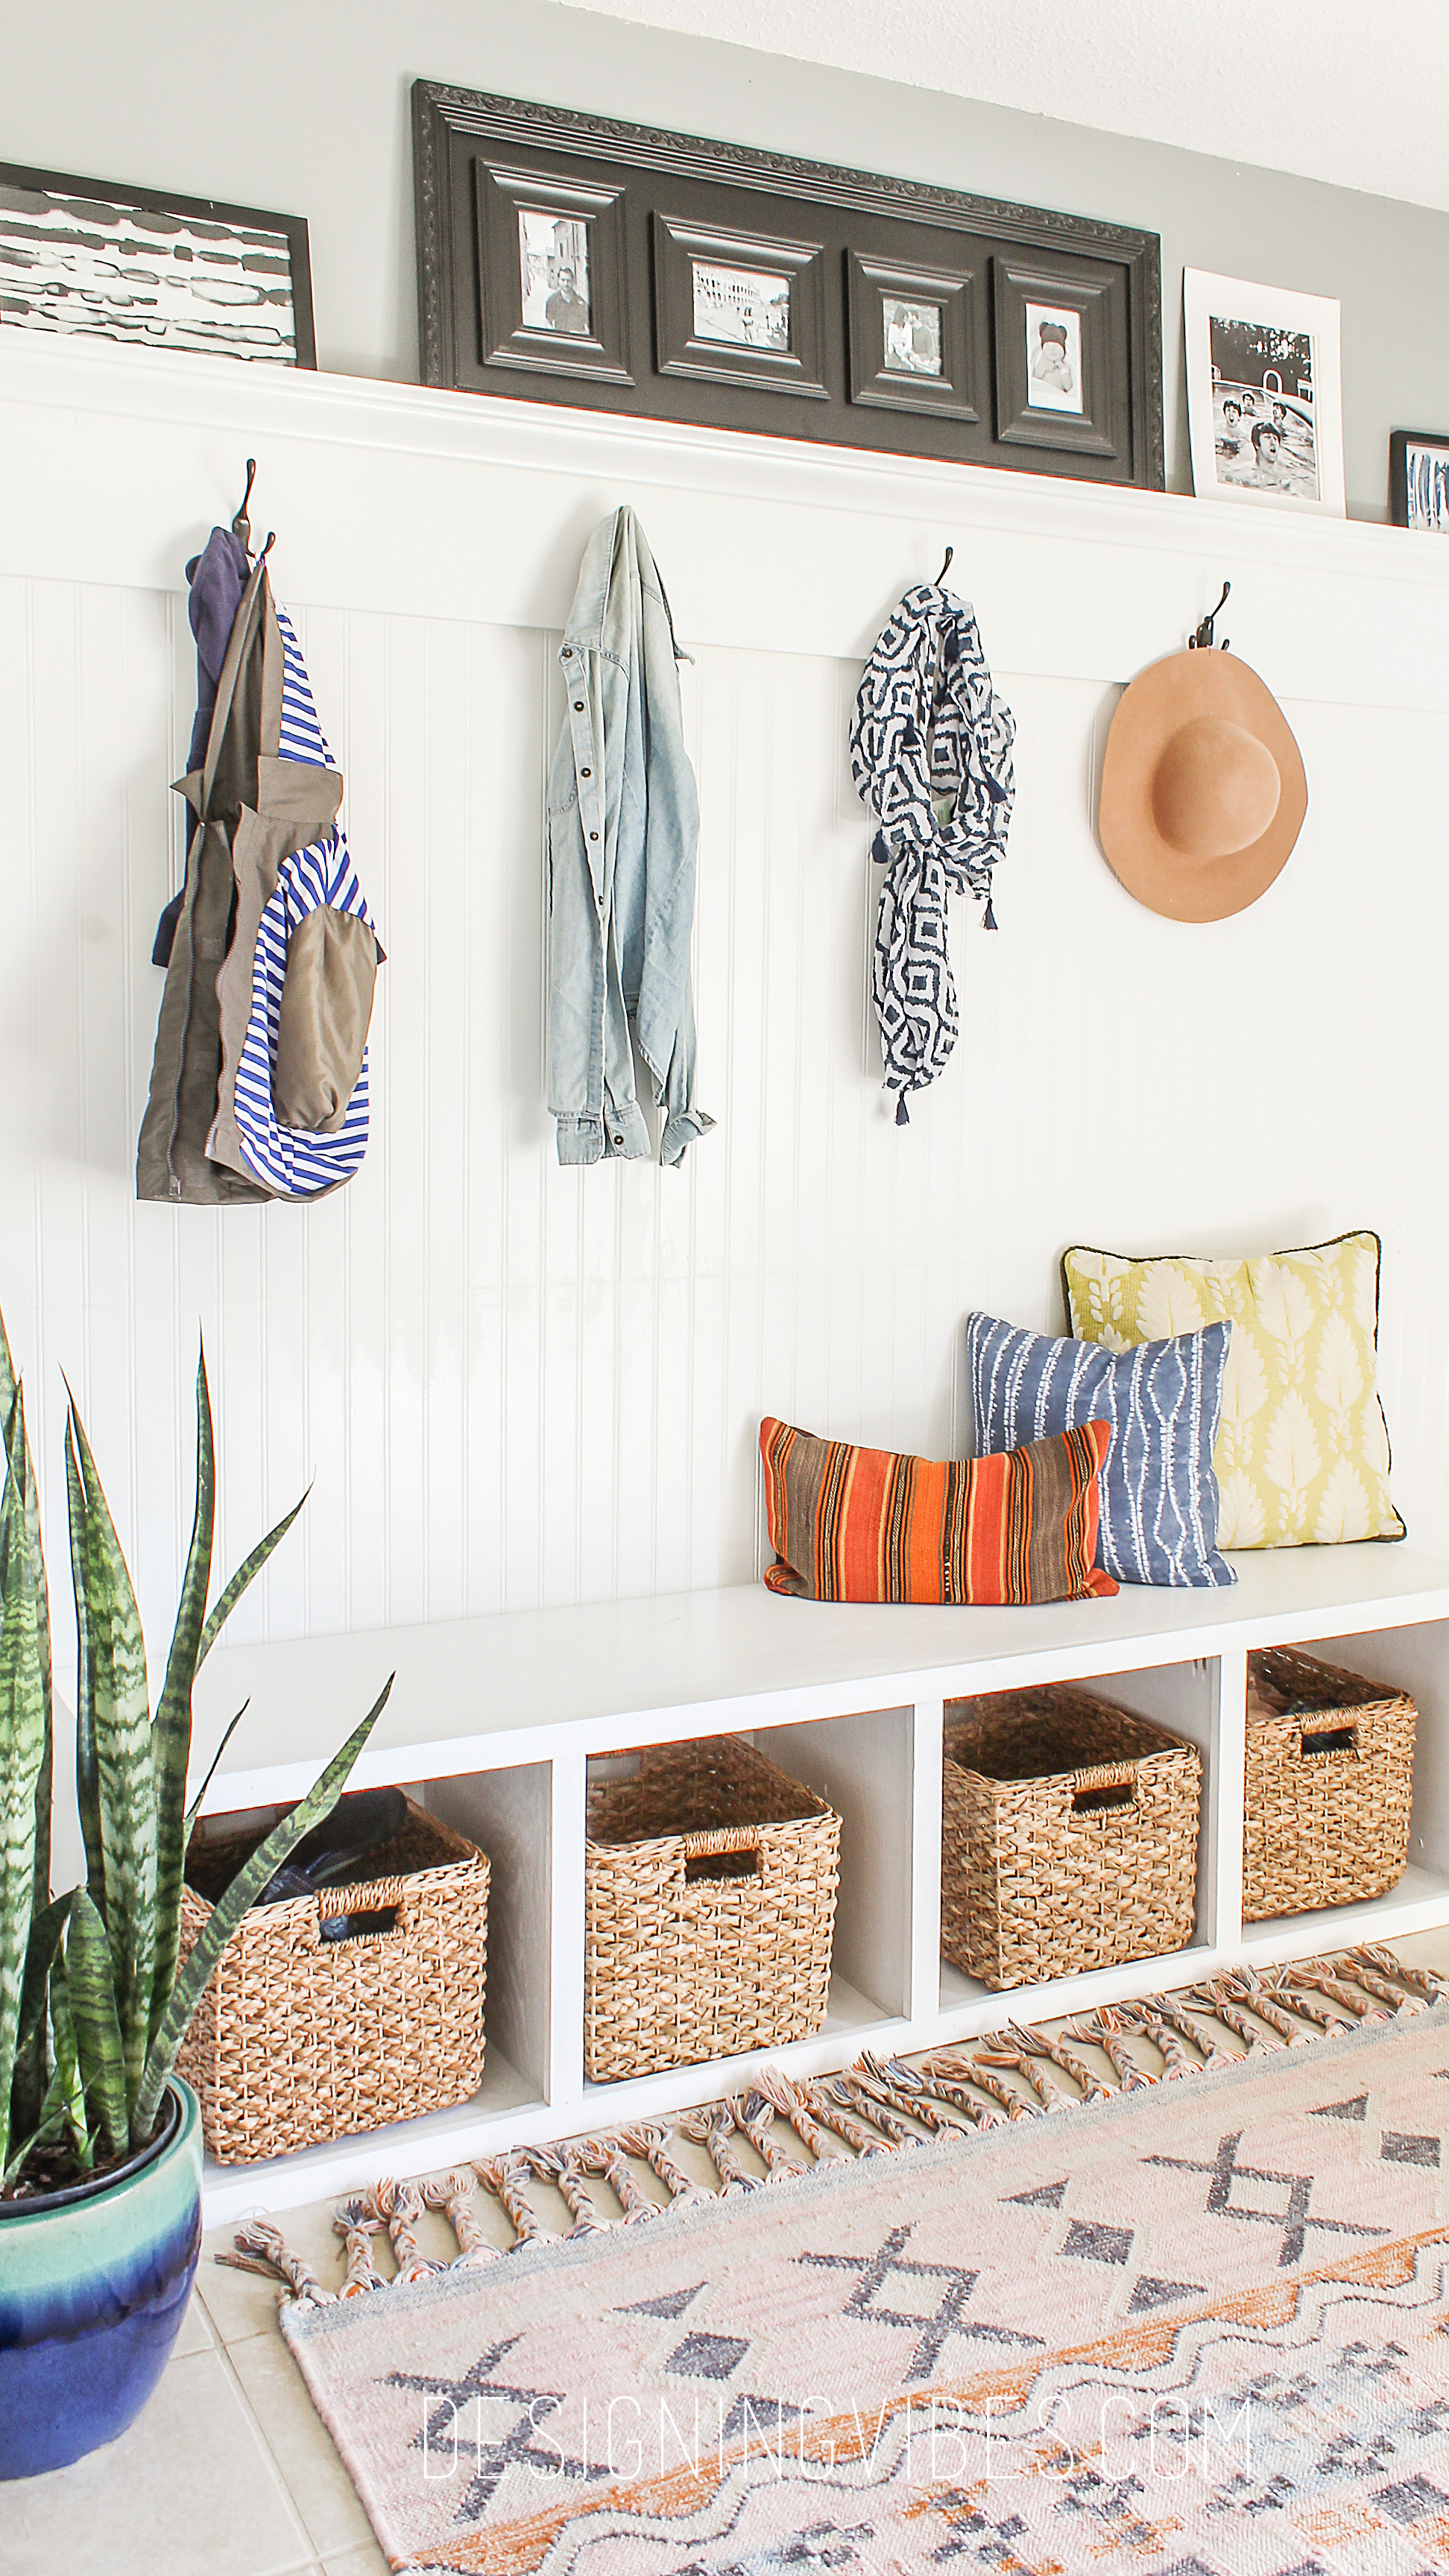 7 Basement Ideas On A Budget Chic Convenience For The Home: DIY Custom Mudroom For Under $200